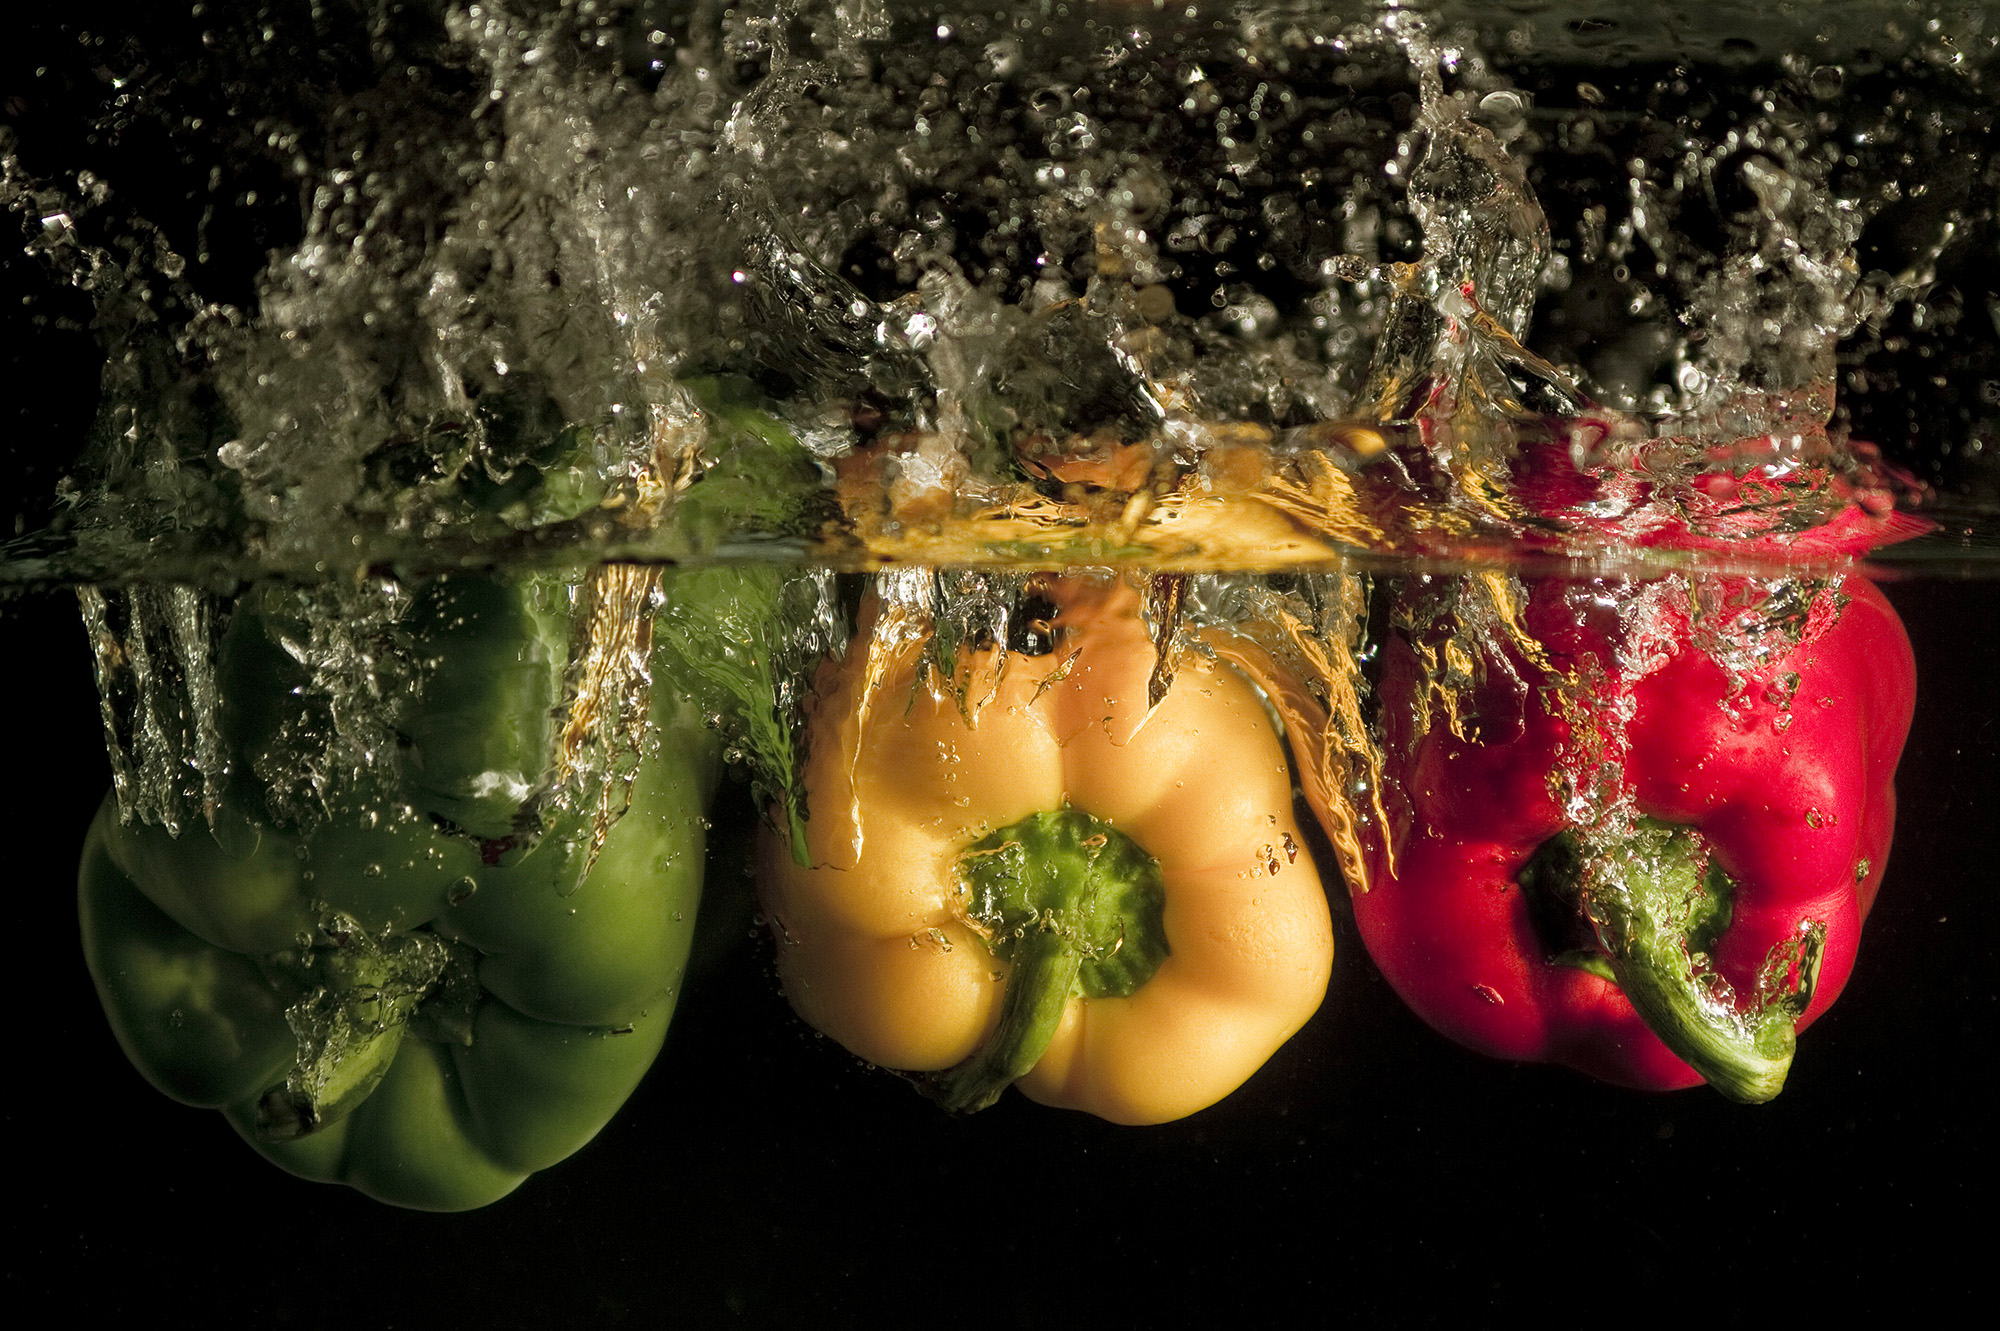 Wet Peppers - Worst Images